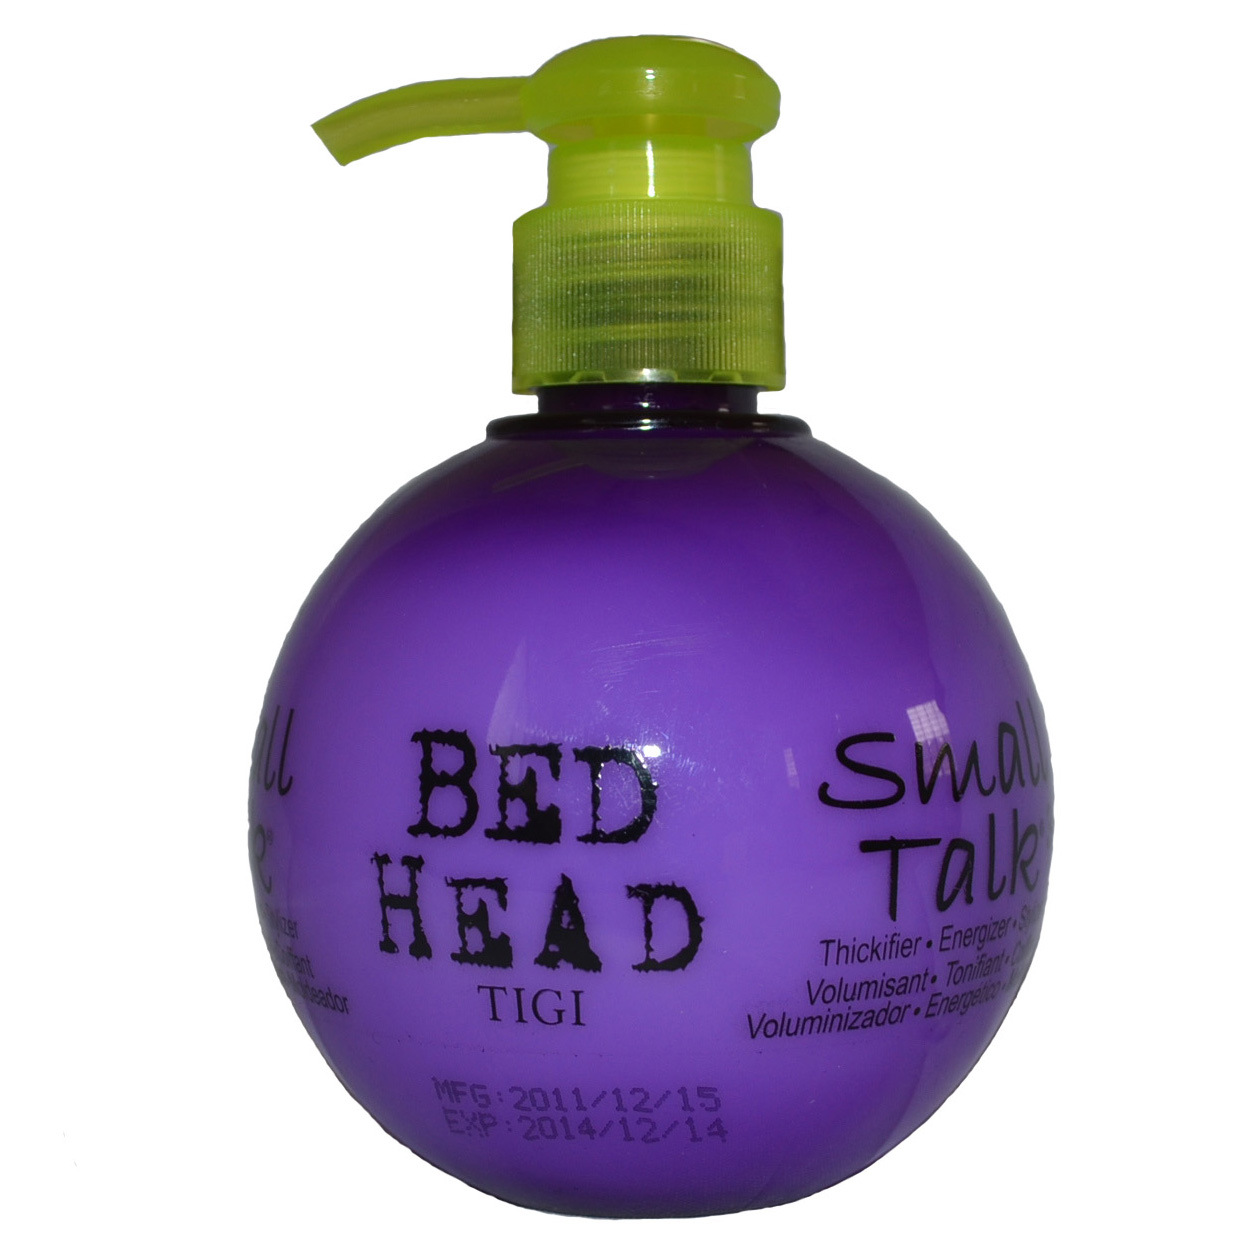 Bed Head Hair Elastin 280ml